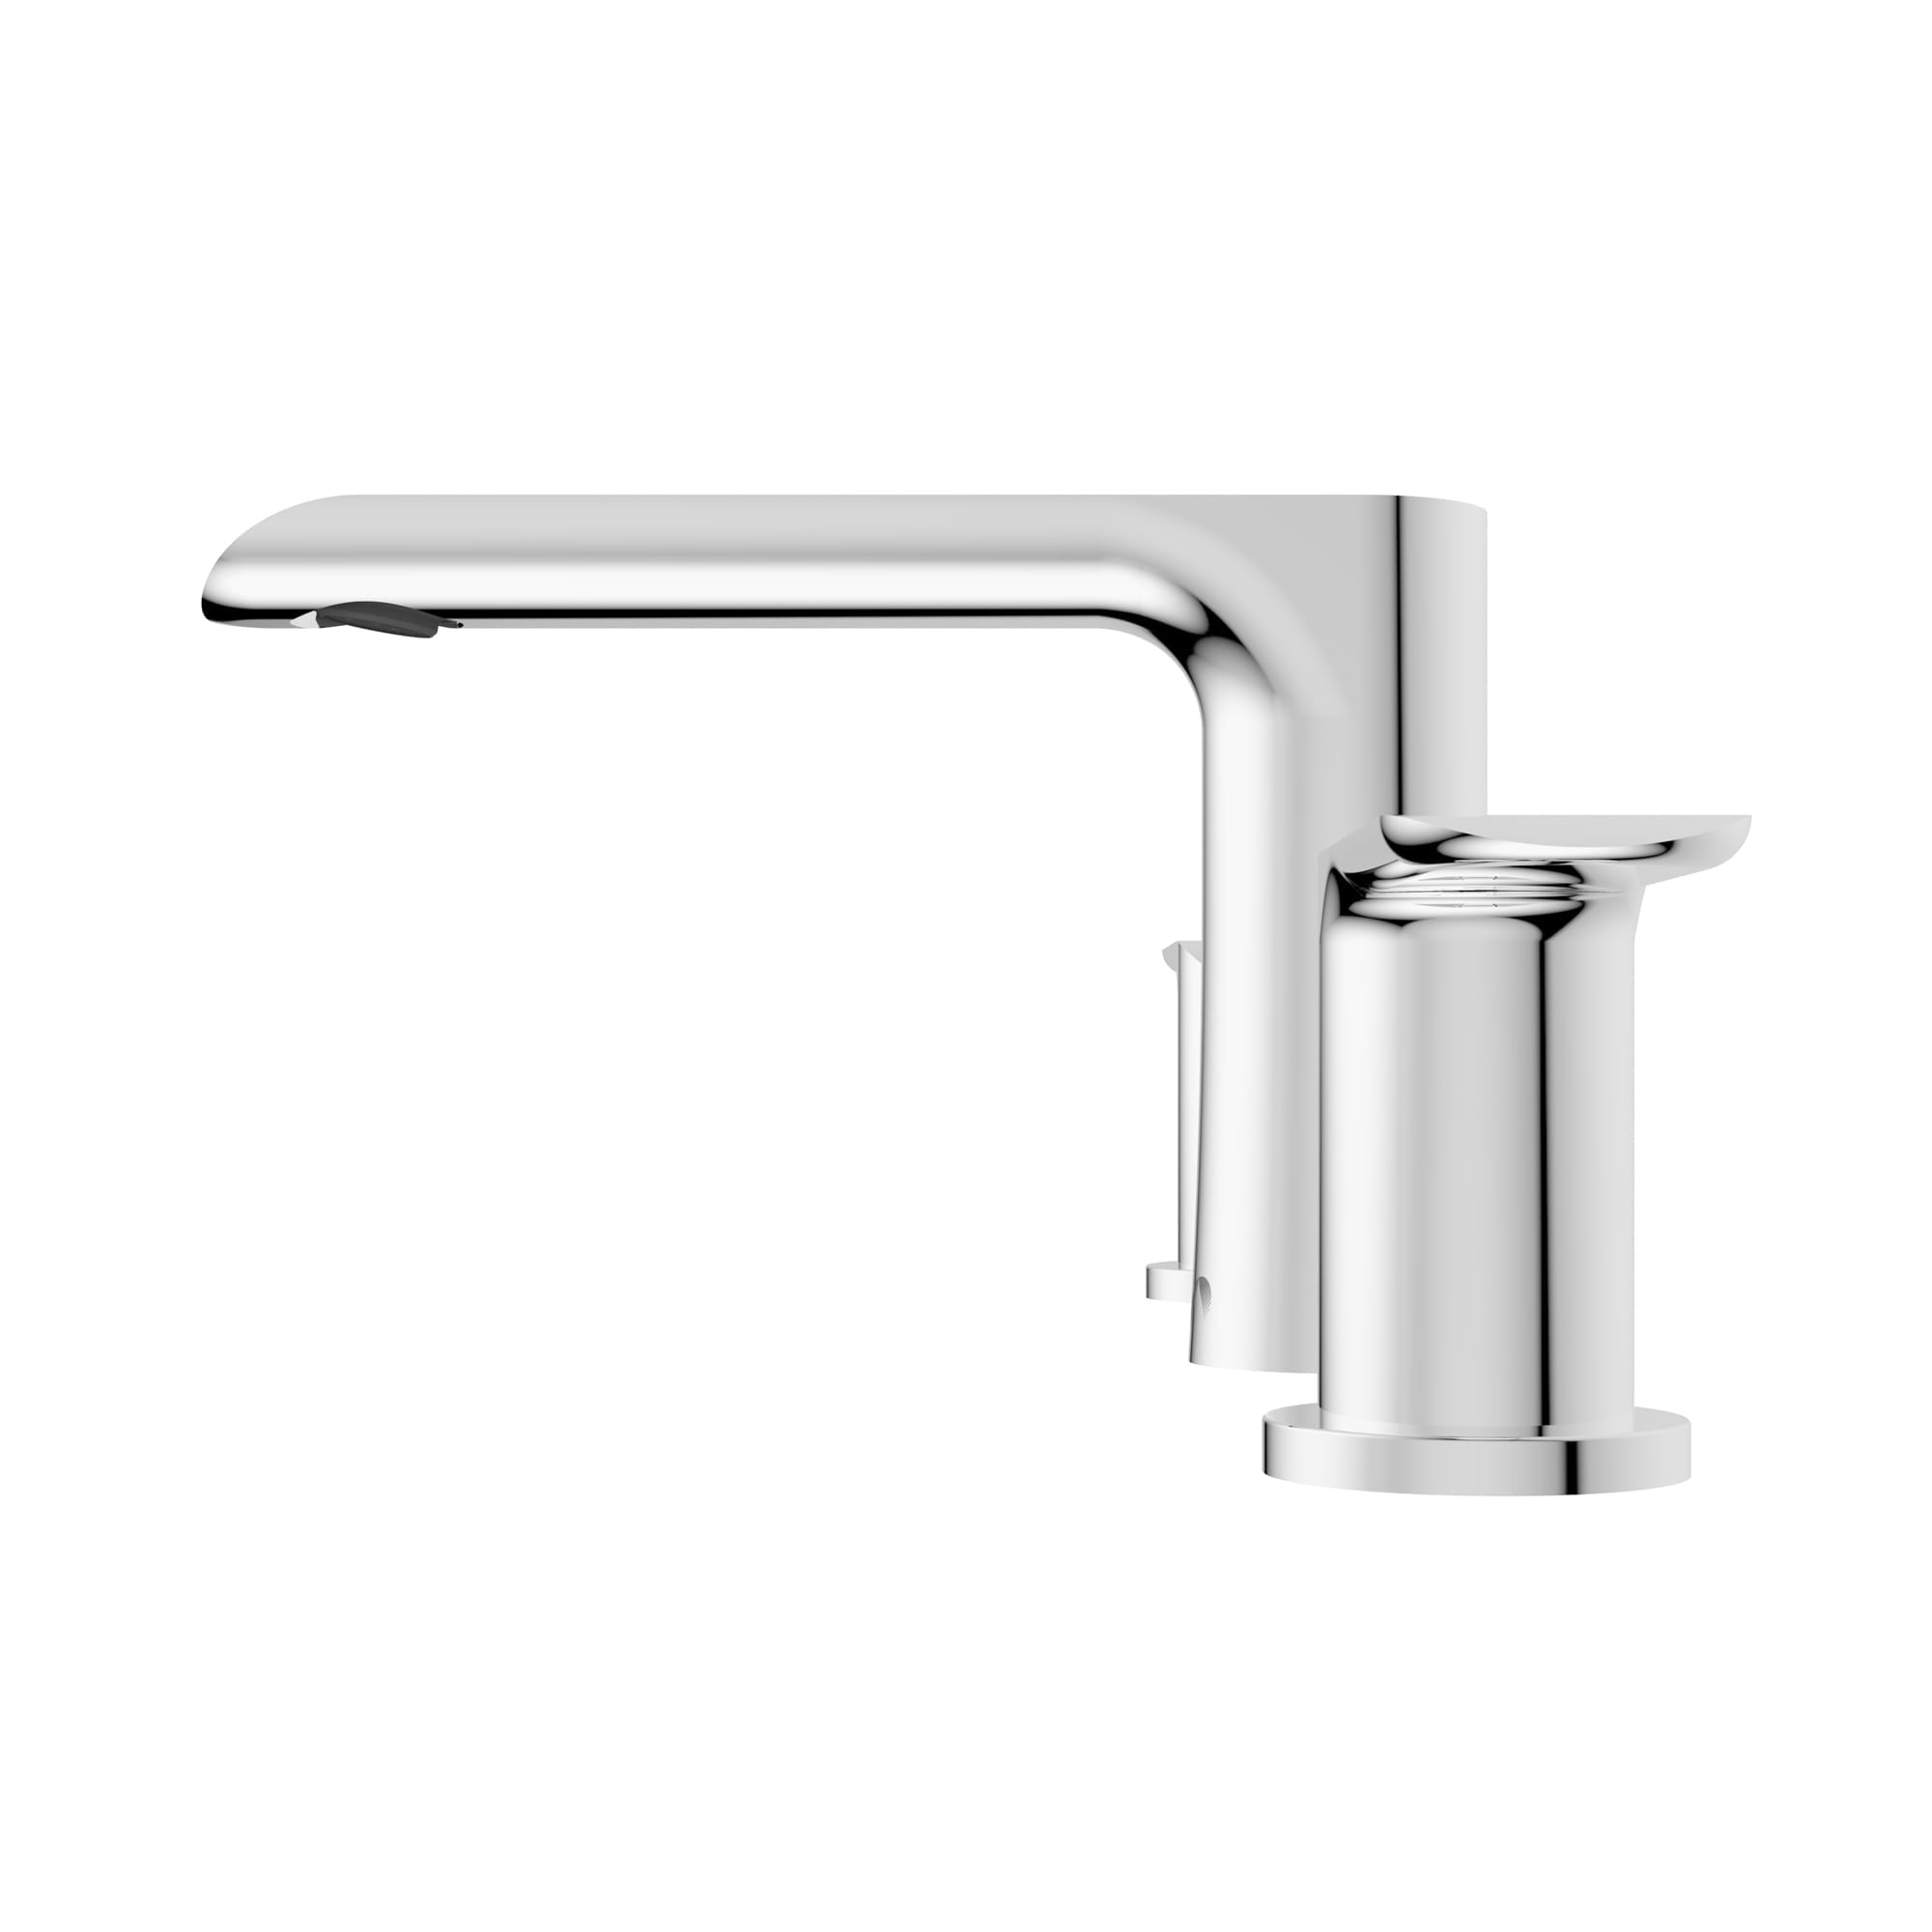 Products U003e Products U003e Lavatory U003e Lavatory Sink Faucet With Swivel Aerator